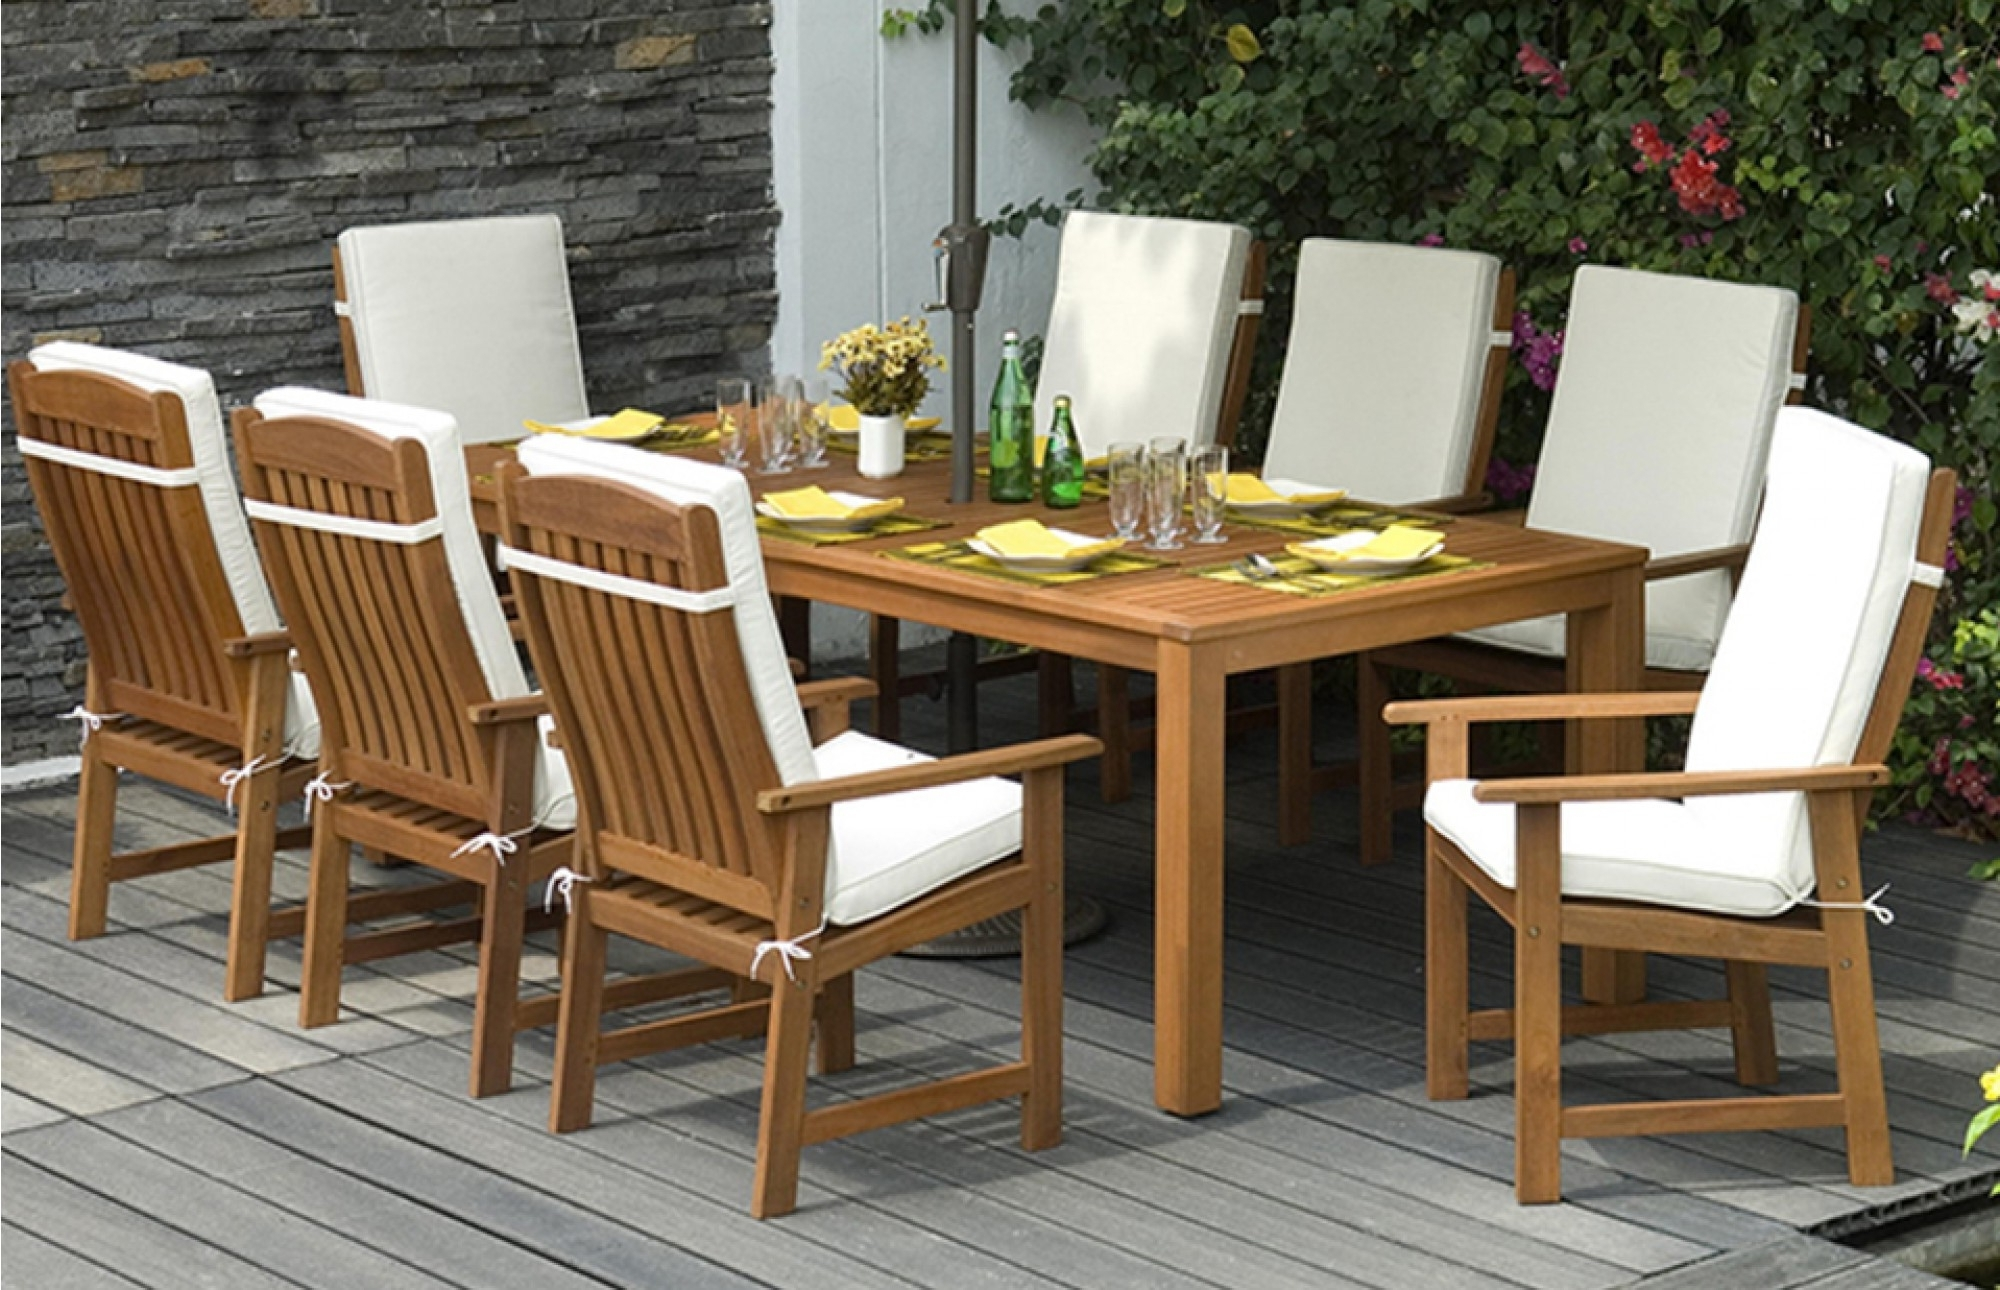 8 Seater Dining Table Sets throughout Most Popular Dining Table Sets 8 Seater • Table Setting Ideas